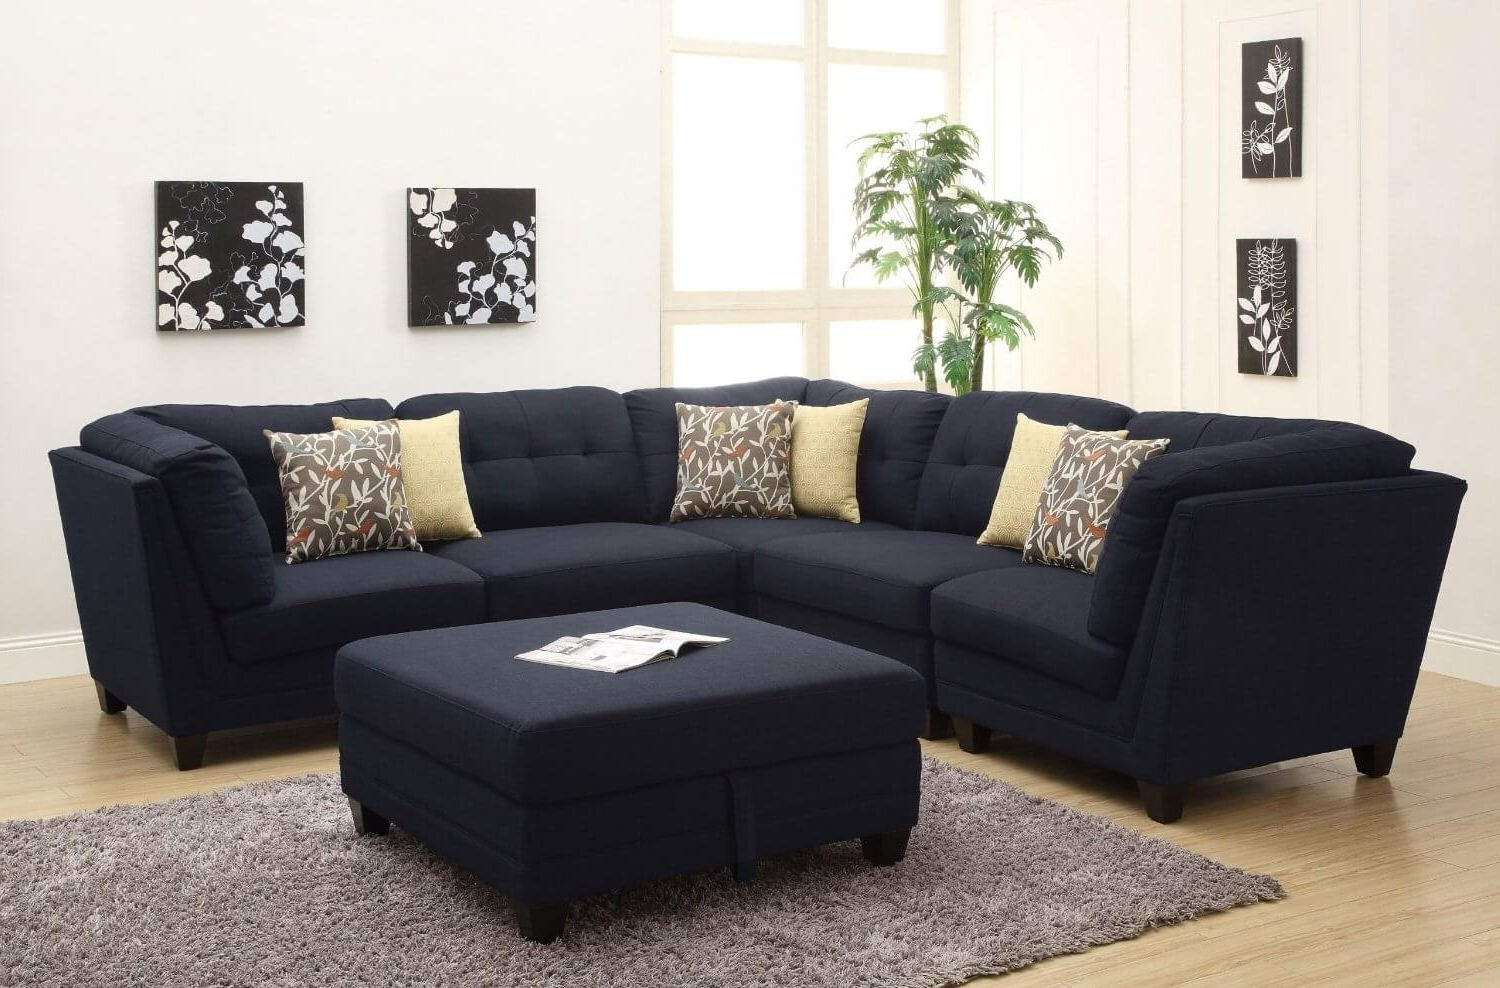 Sectional Sofas Under 900 For Famous 100 Awesome Sectional Sofas Under $1,000 (2018) (View 14 of 20)